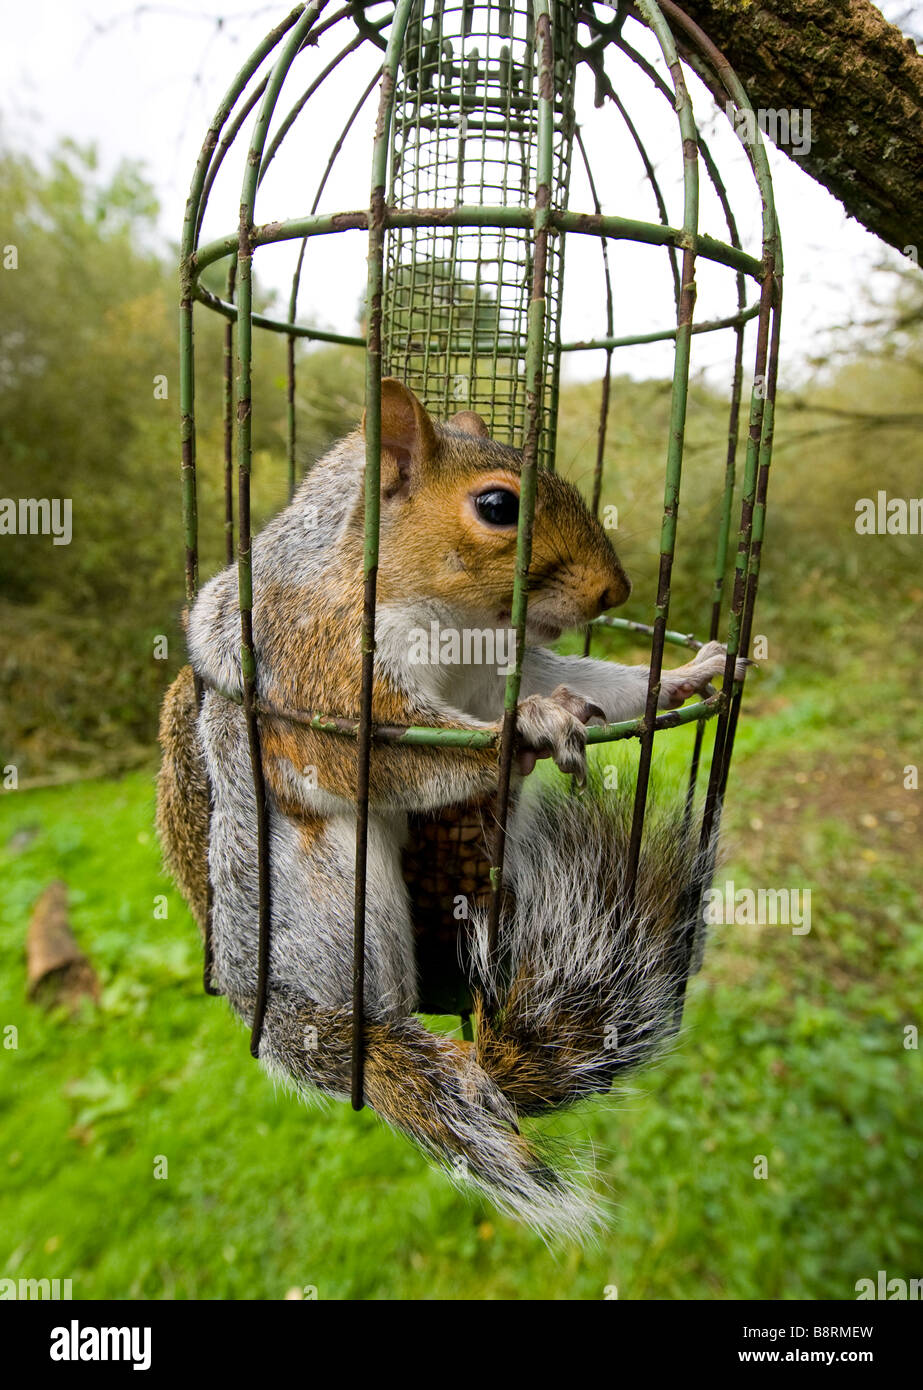 squirrel feeder sky proof image mandarin cafe bird